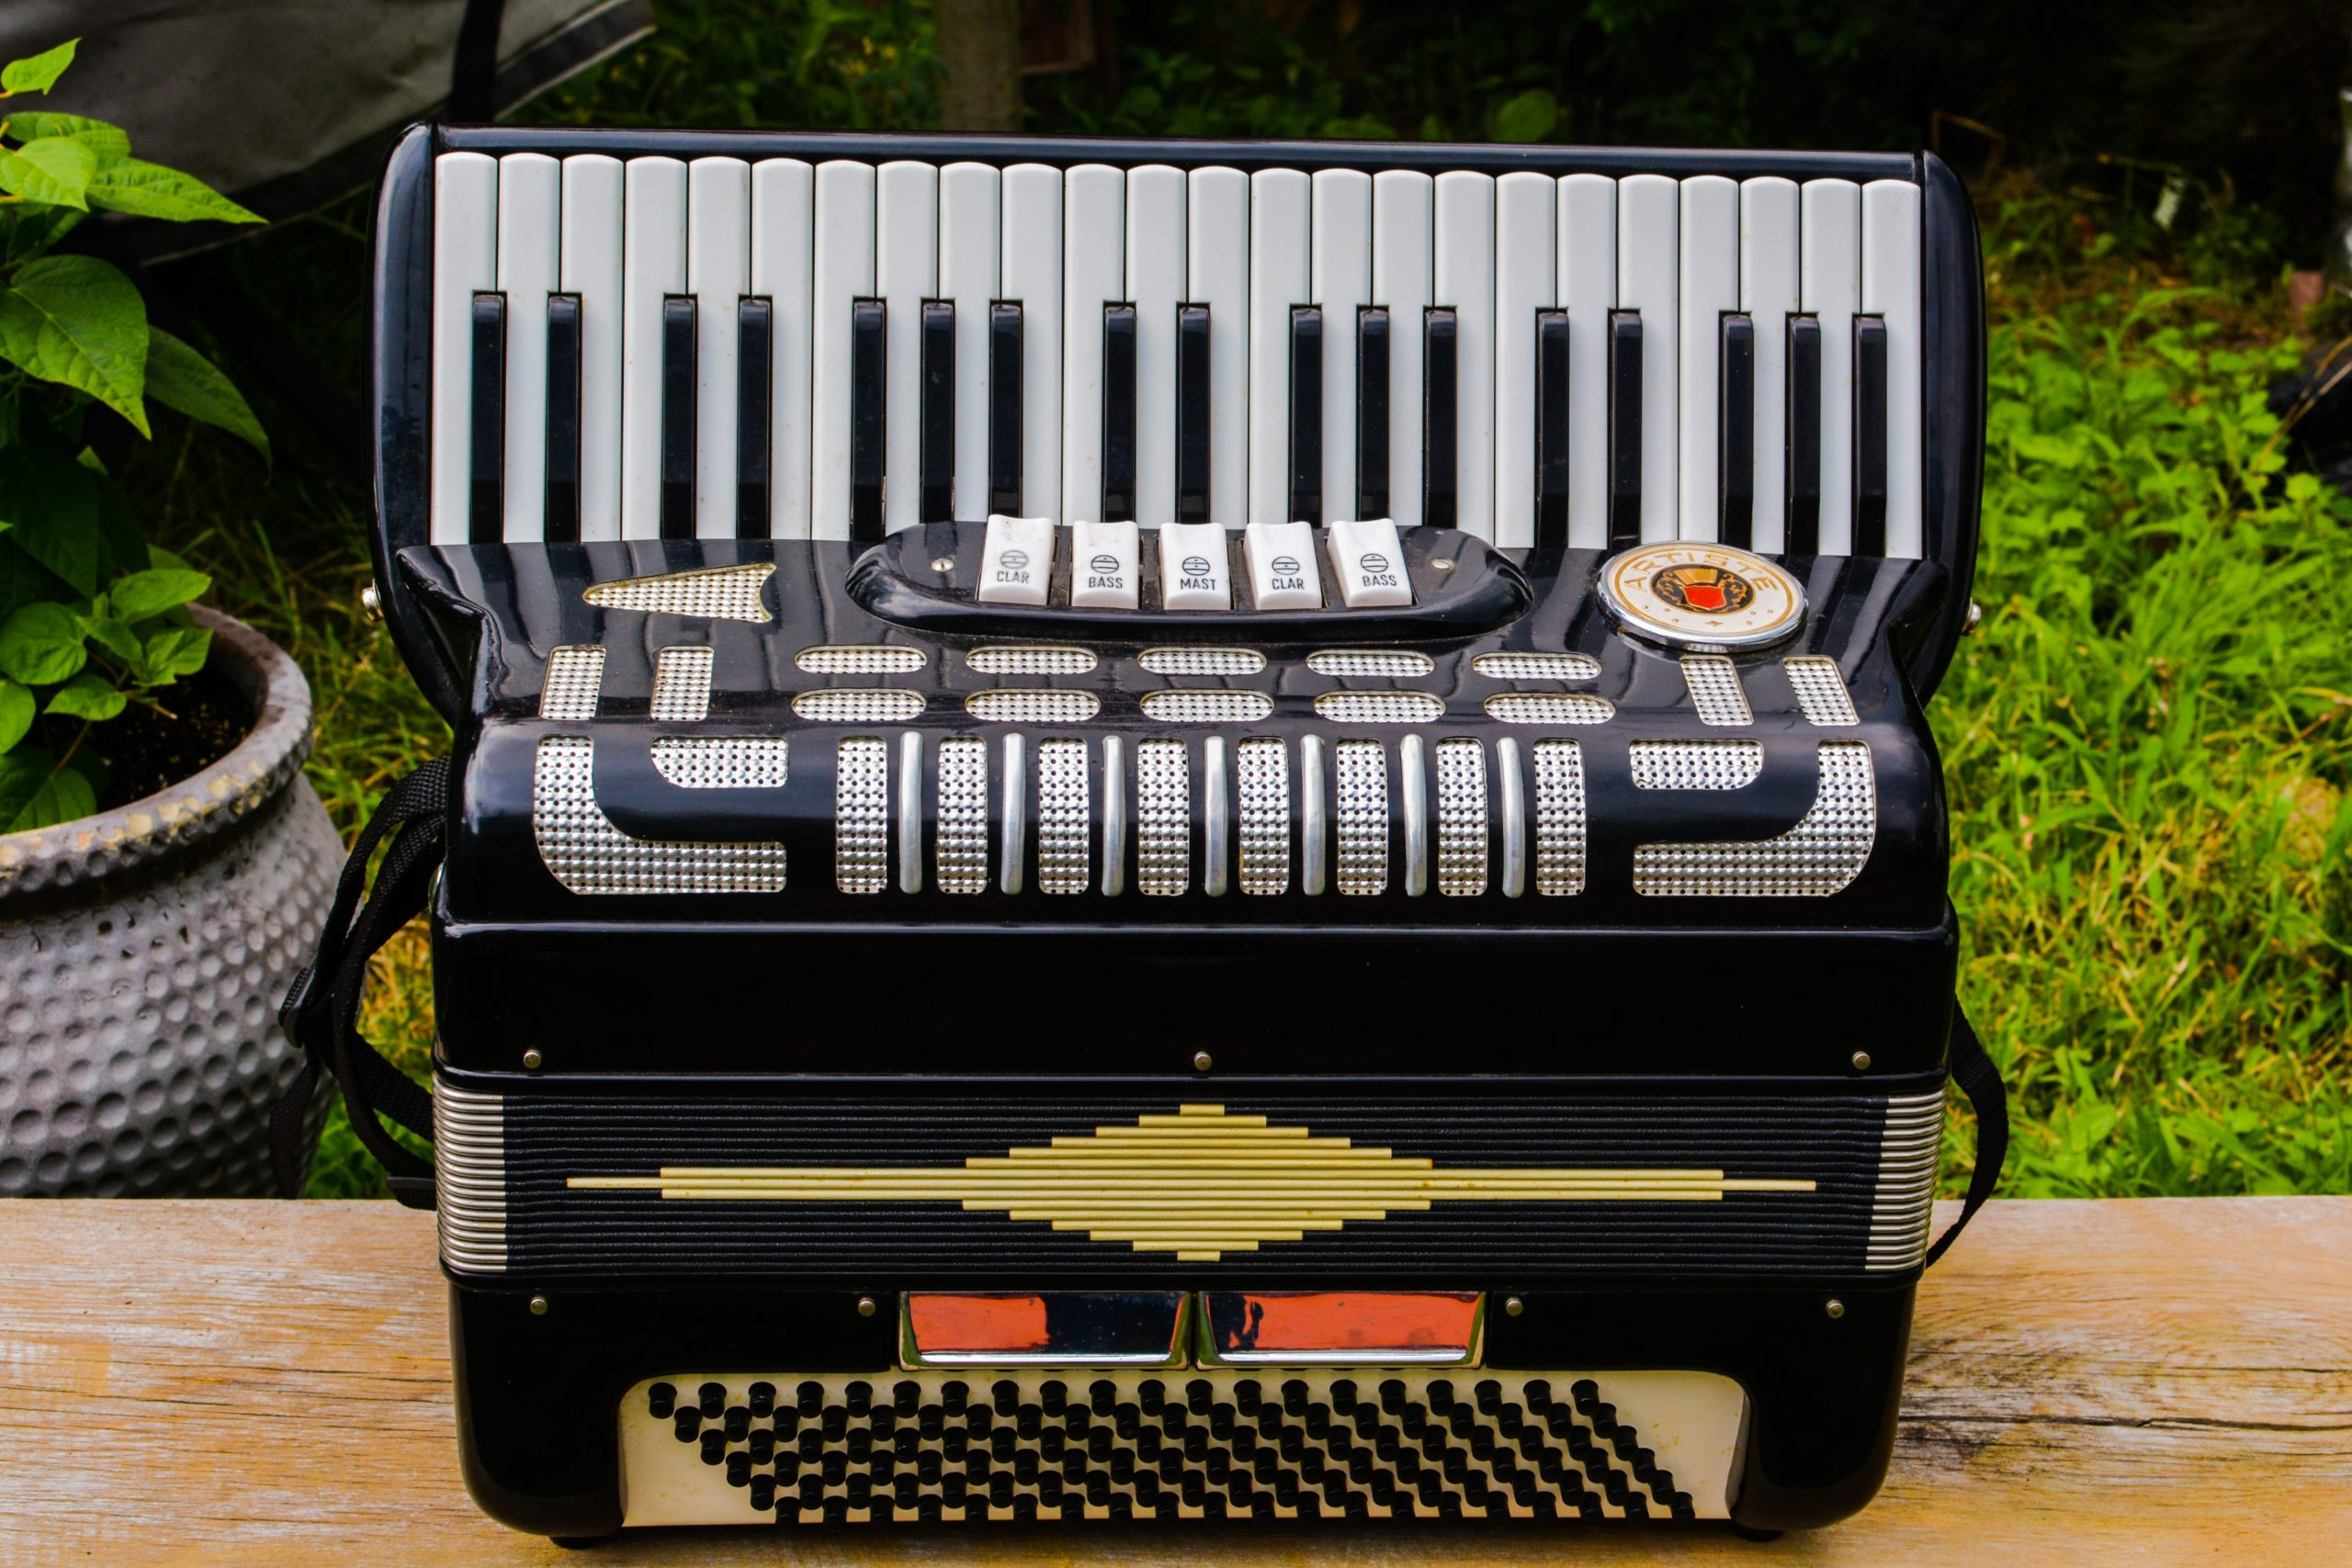 Easiest Instrument To Learn Accordion